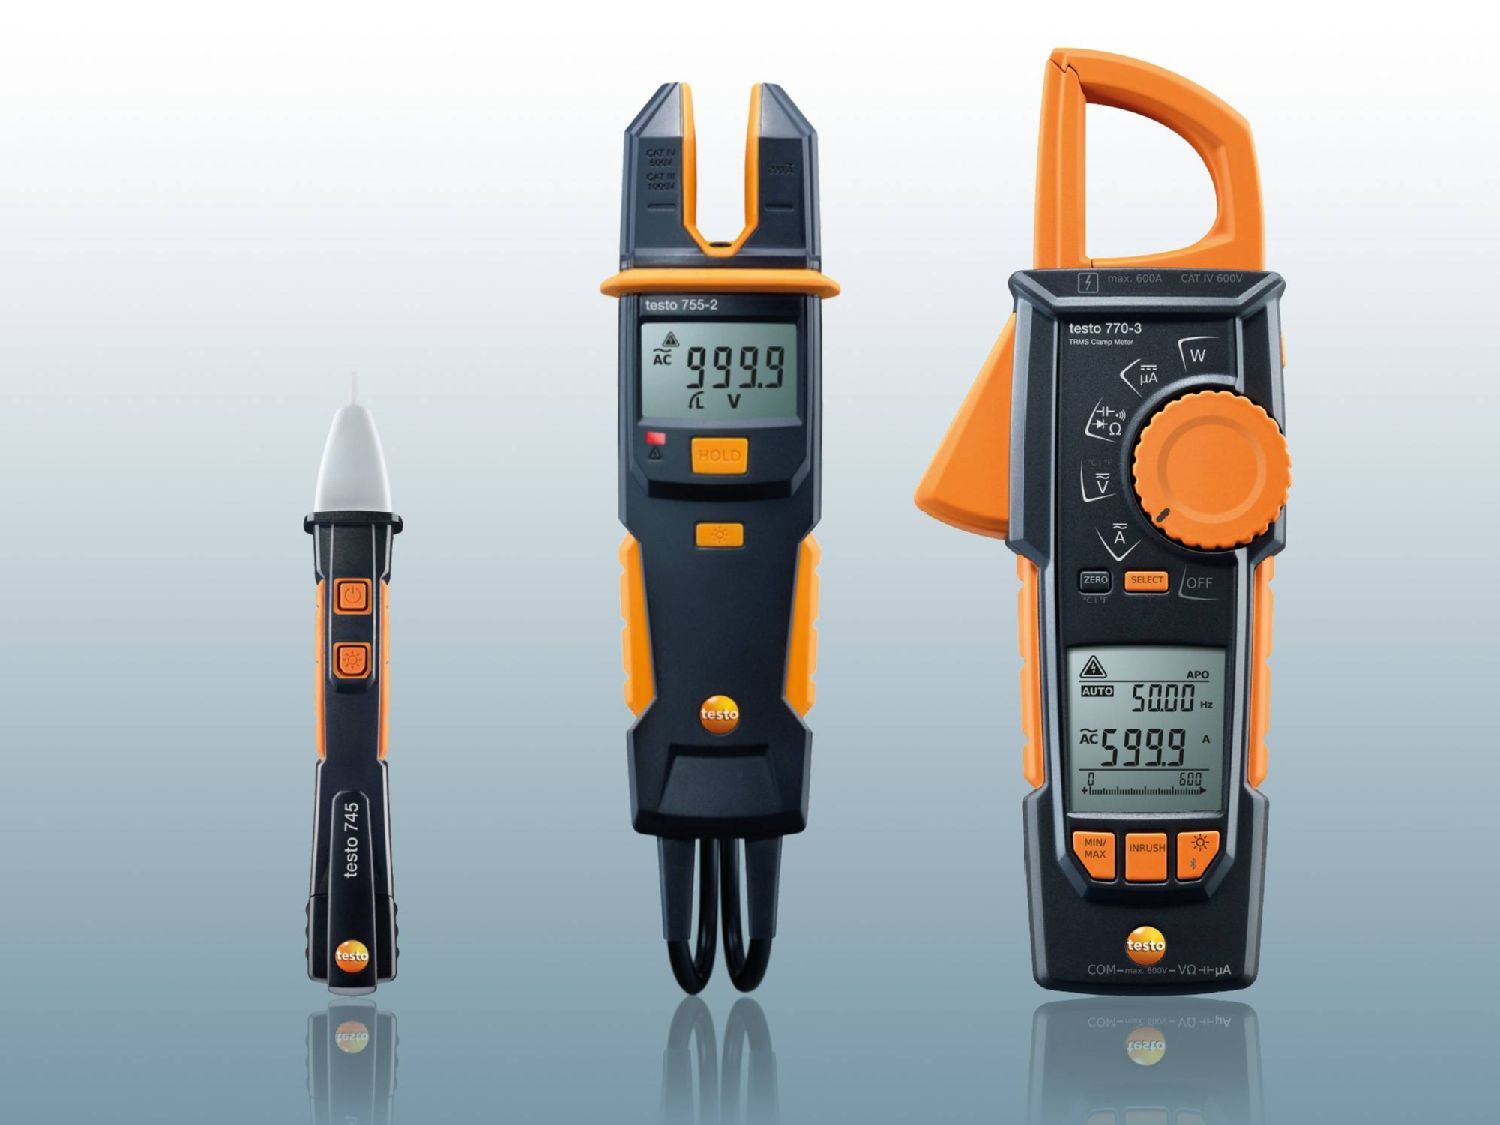 Voltage tester, phase tester and clamp meter